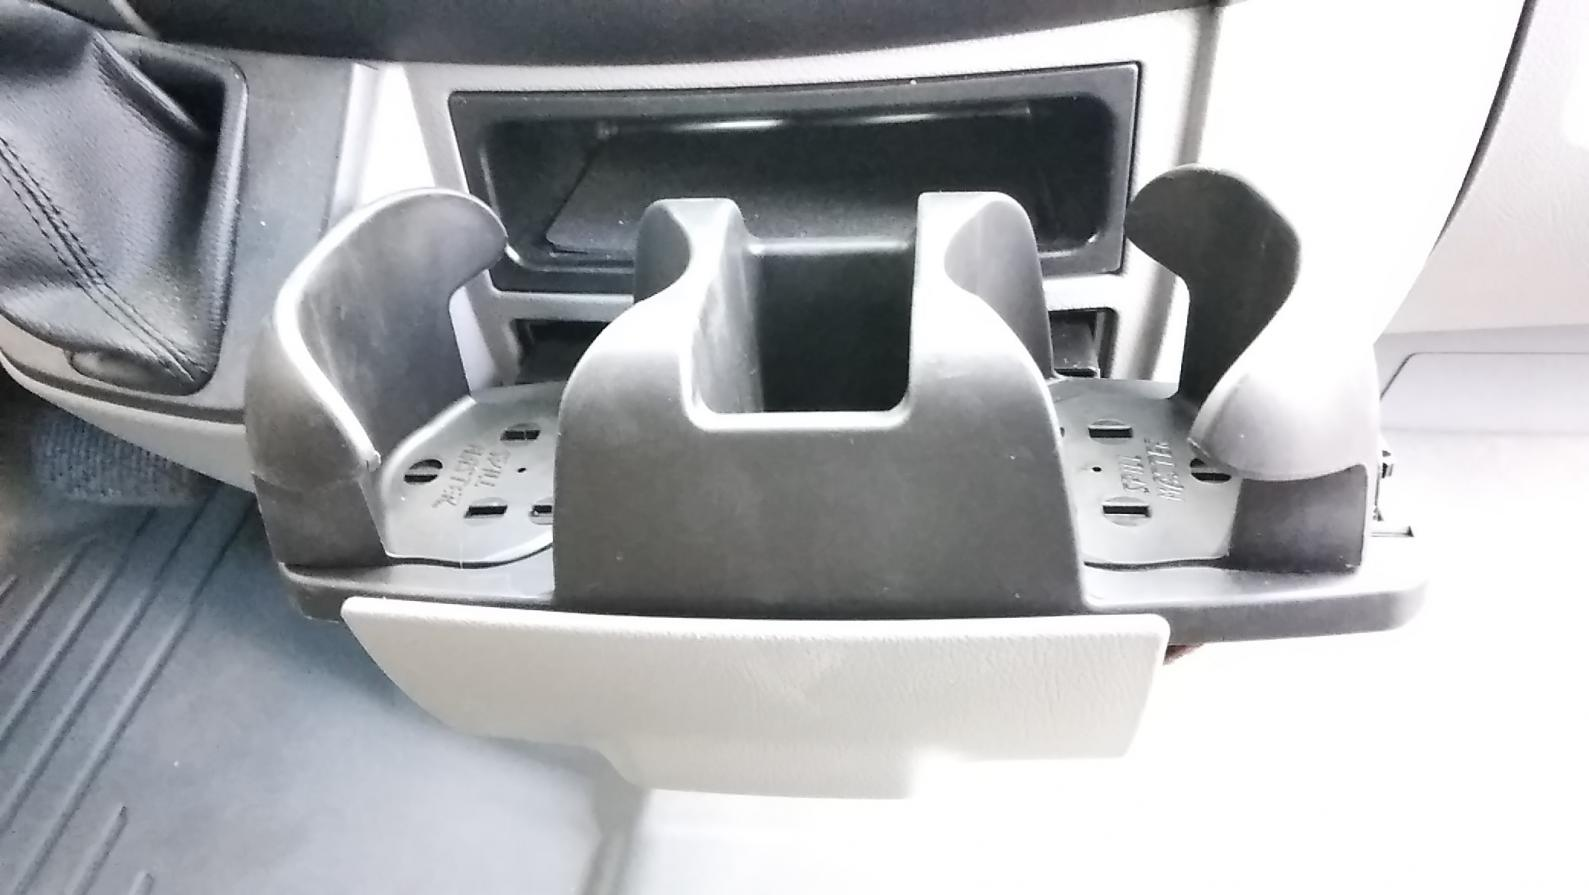 20180529 cup holder